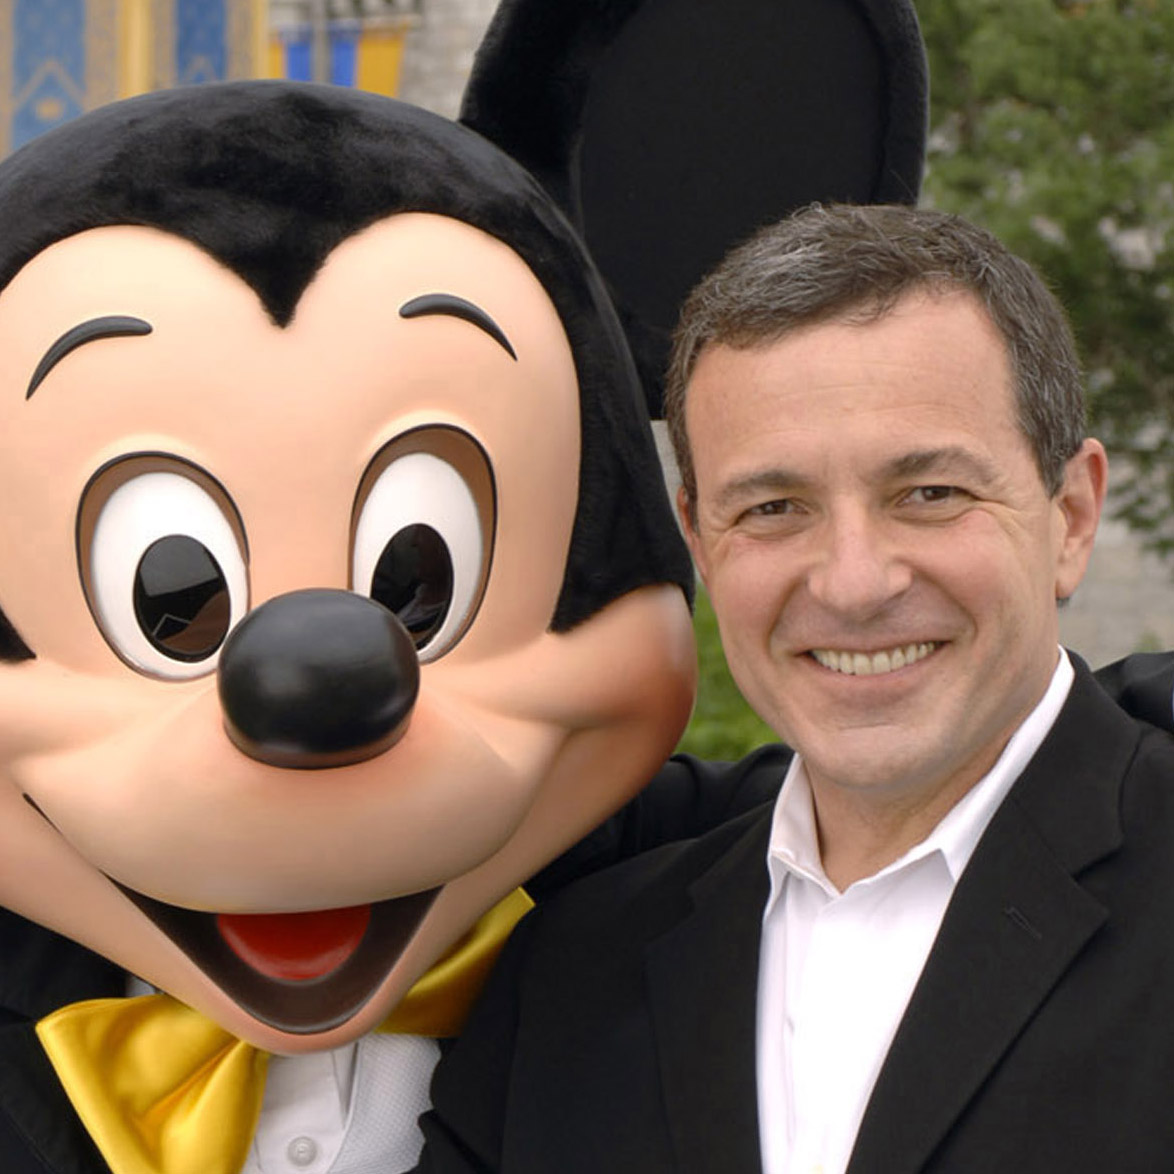 bob iger rocks disney jan 19 The producers guild of america has tapped walt disney chairman and ceo bob iger as the recipient of its 2014 milestone award the award will be presented to iger at the 25th annual producers guild awards ceremony jan 19 at the beverly hilton hotel.